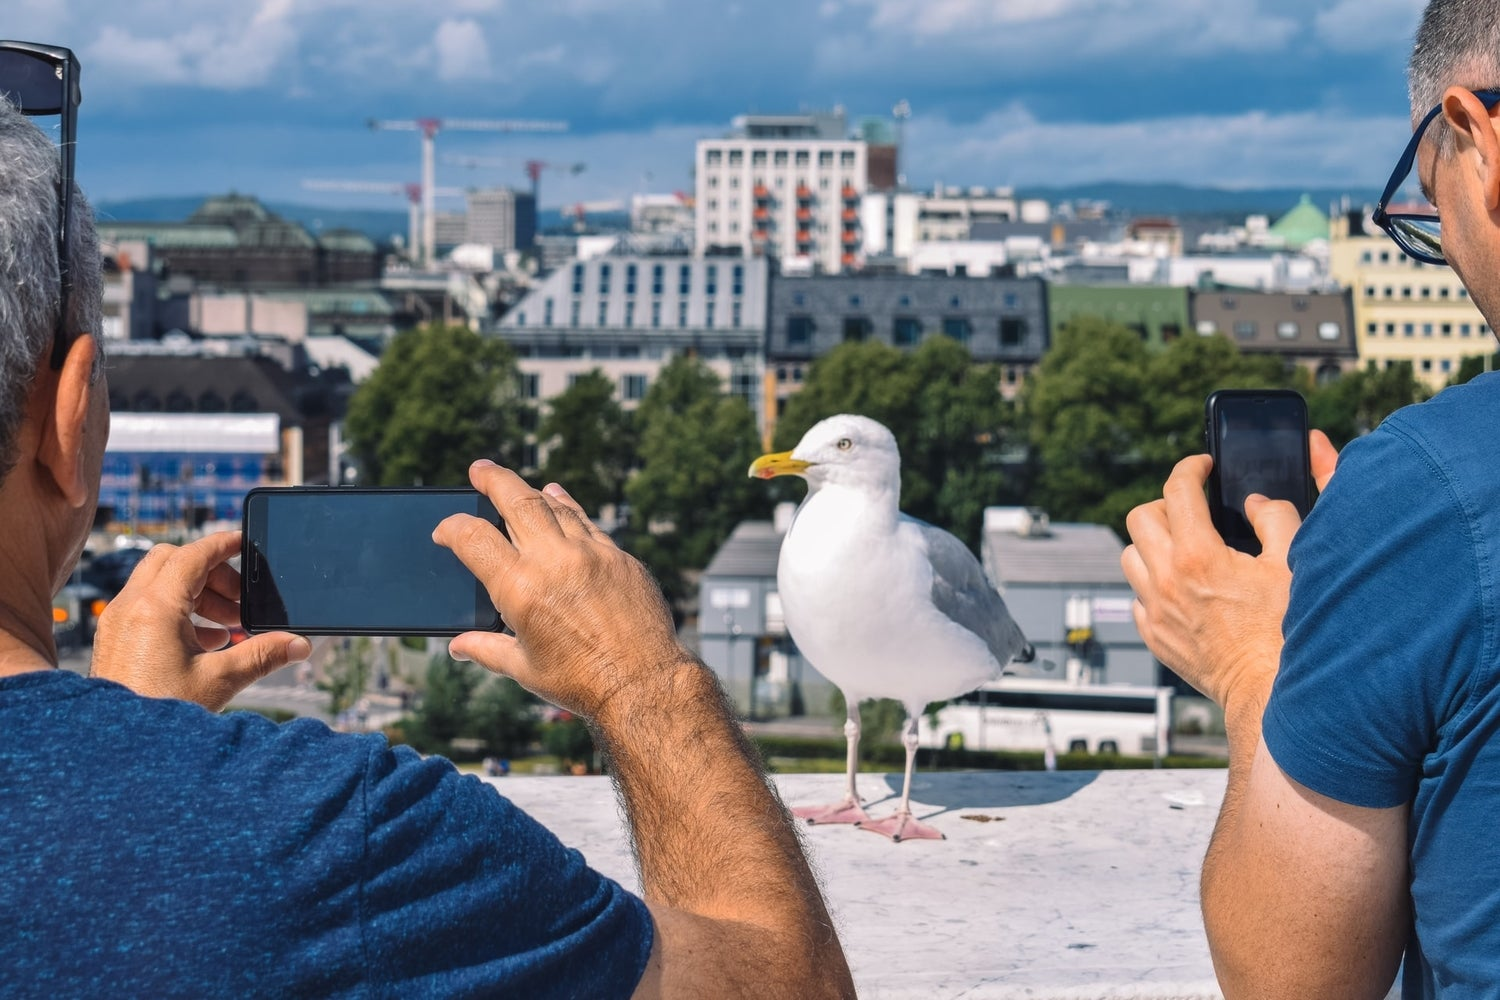 Two tourists using their phones to photograph a gull in front of a city skyline